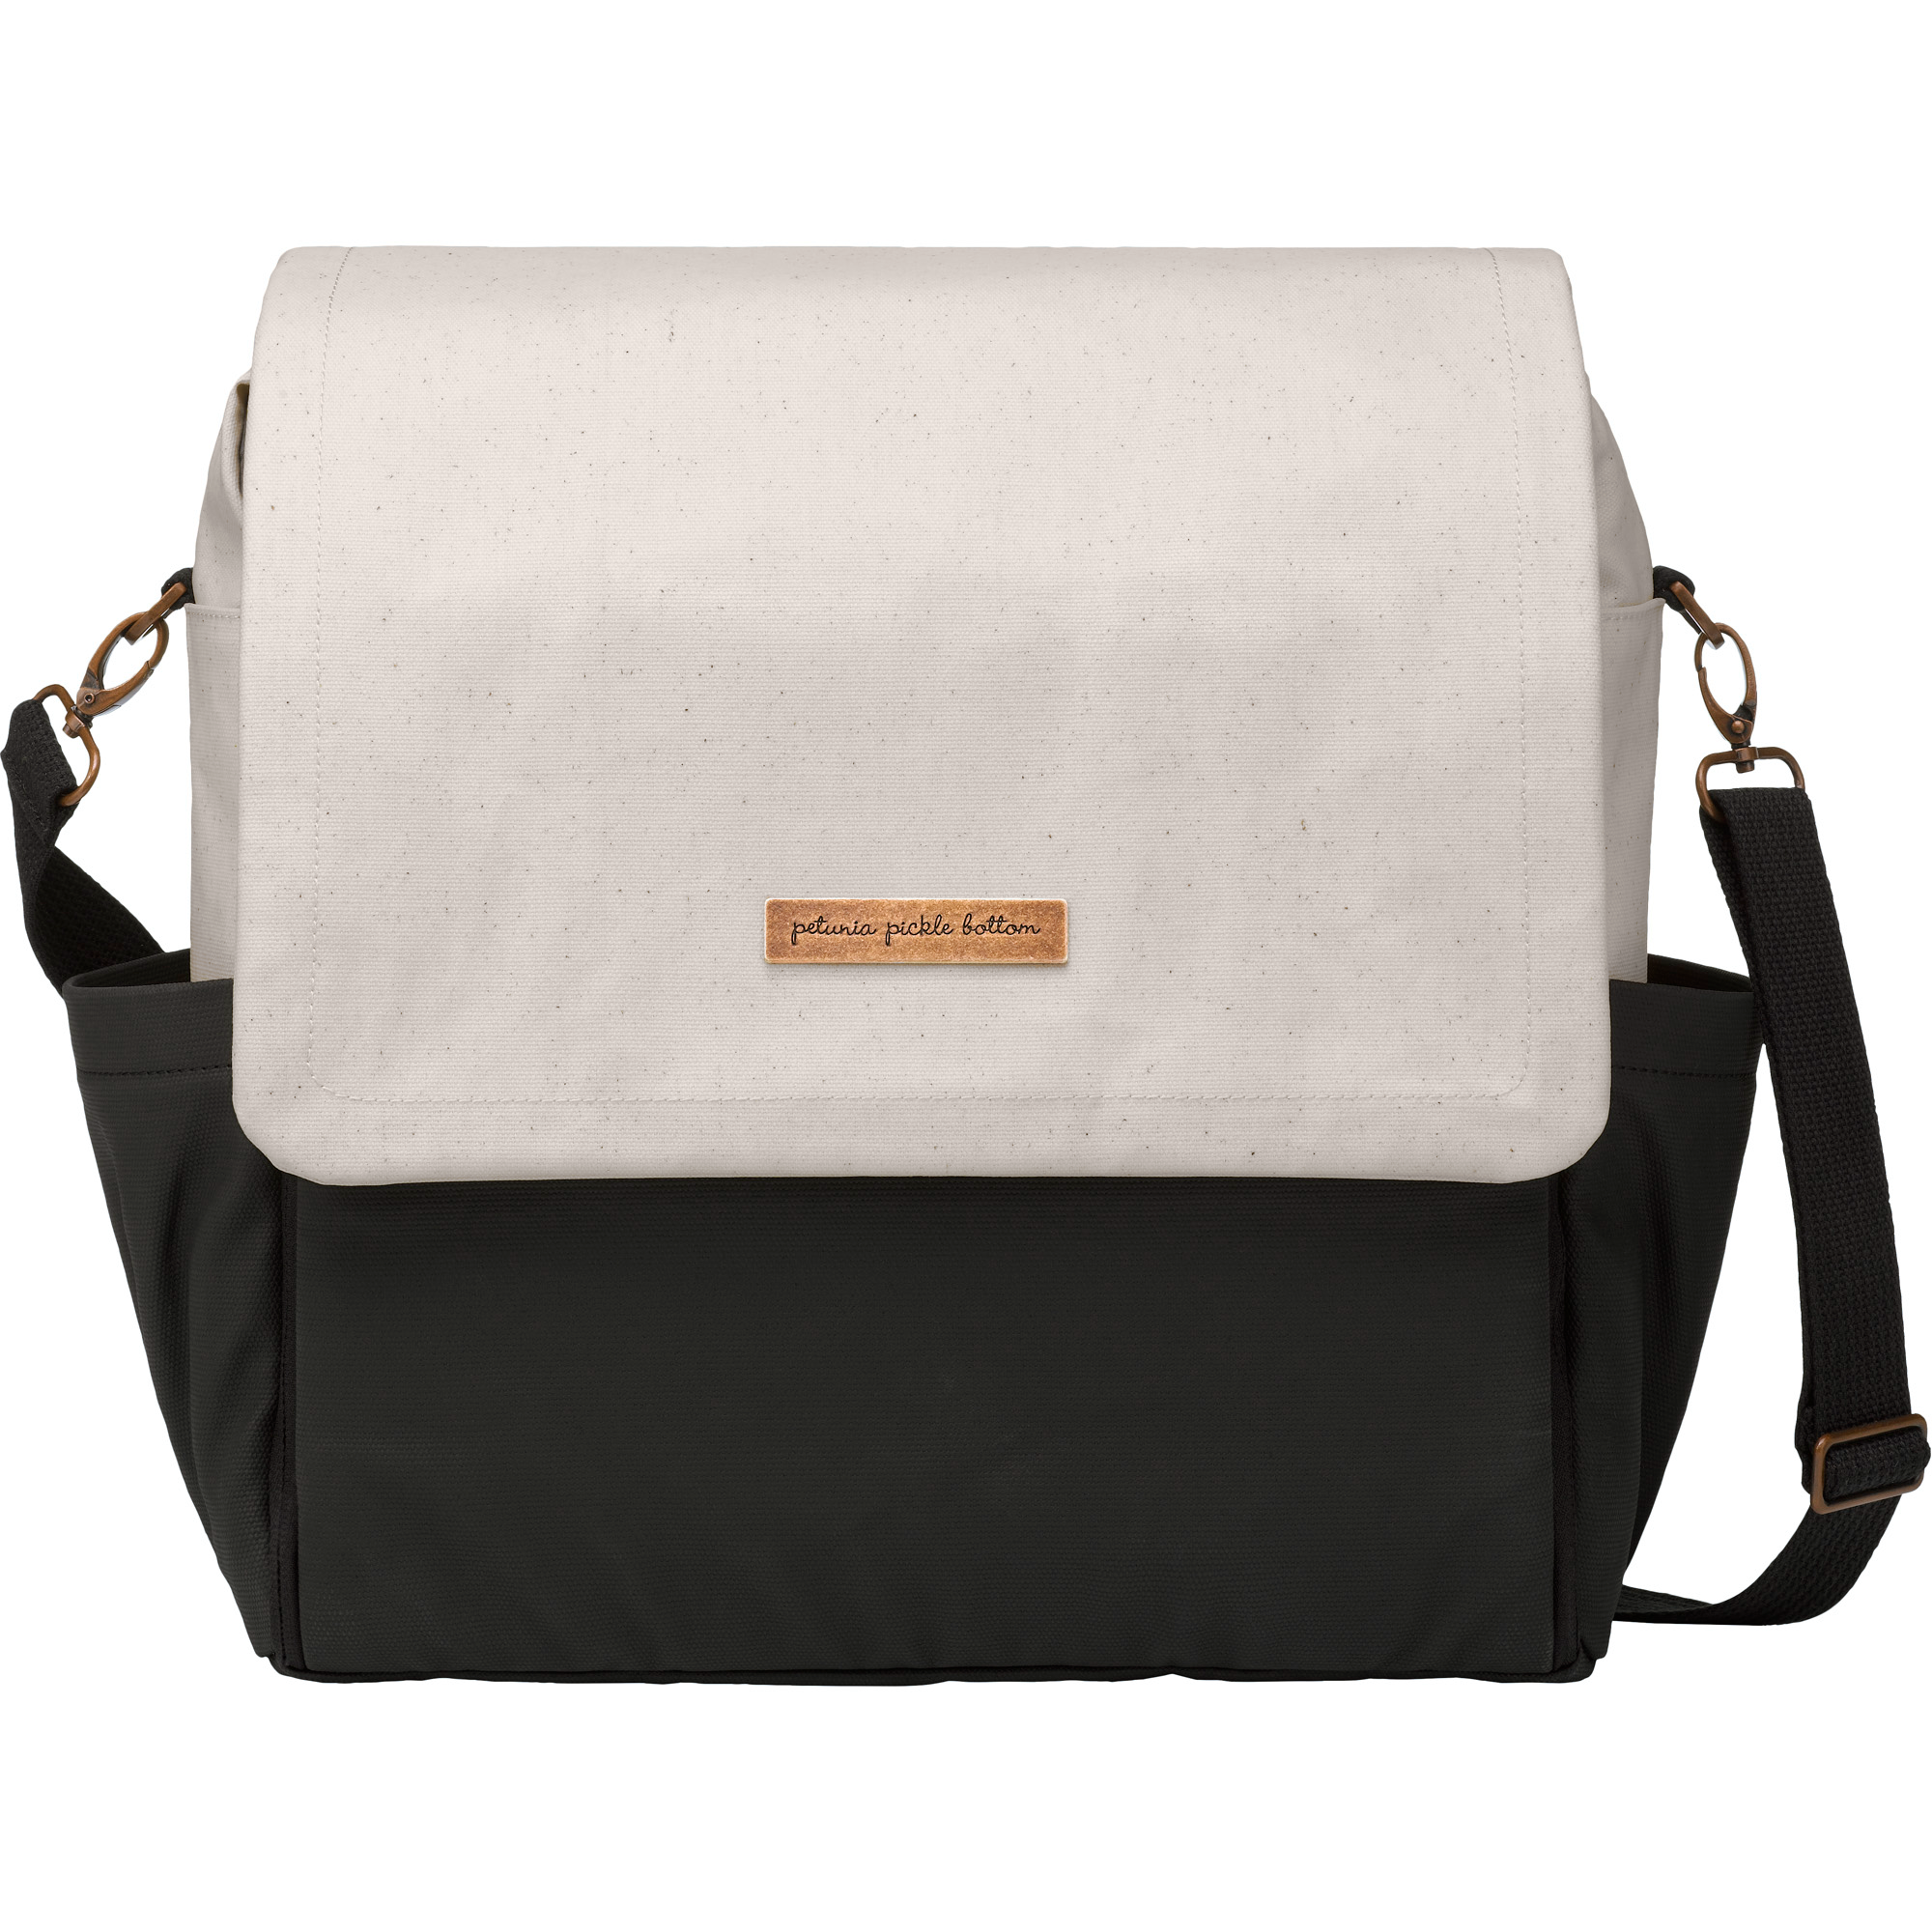 Abundance Boxy Backpack in Birch/Black - $210.00